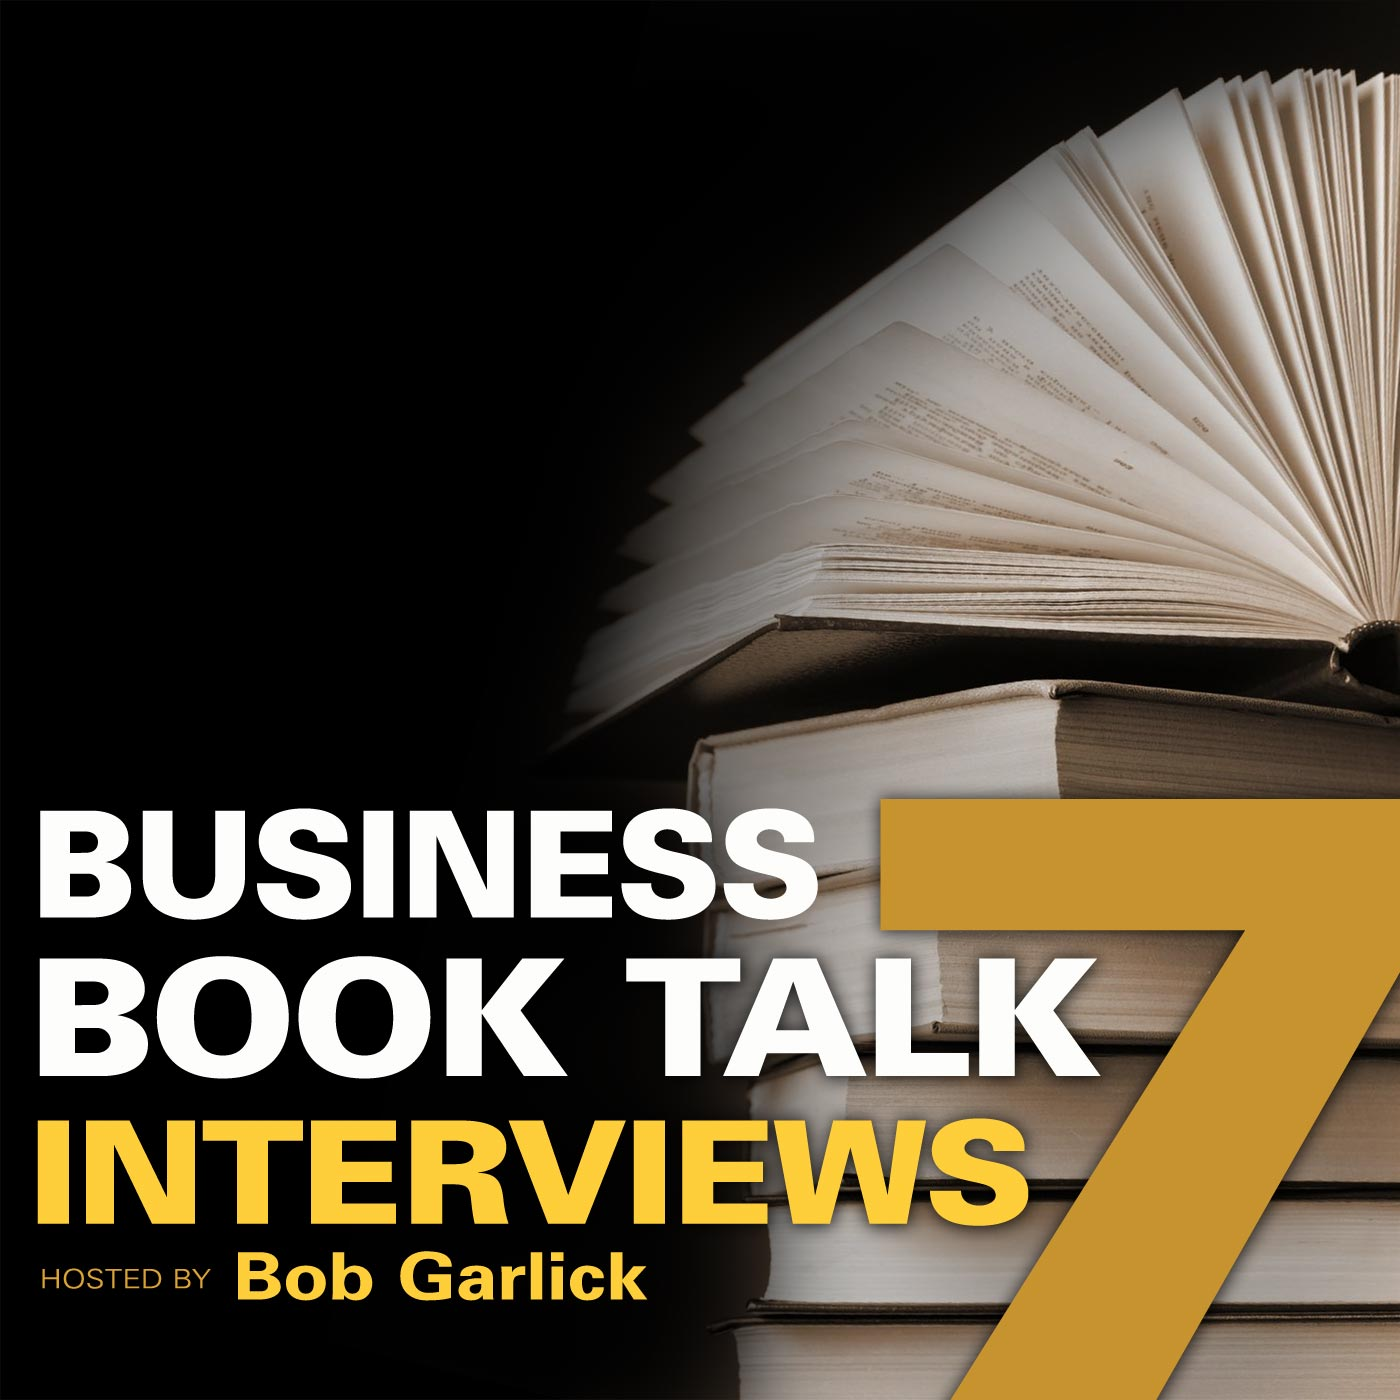 Business Book Talk